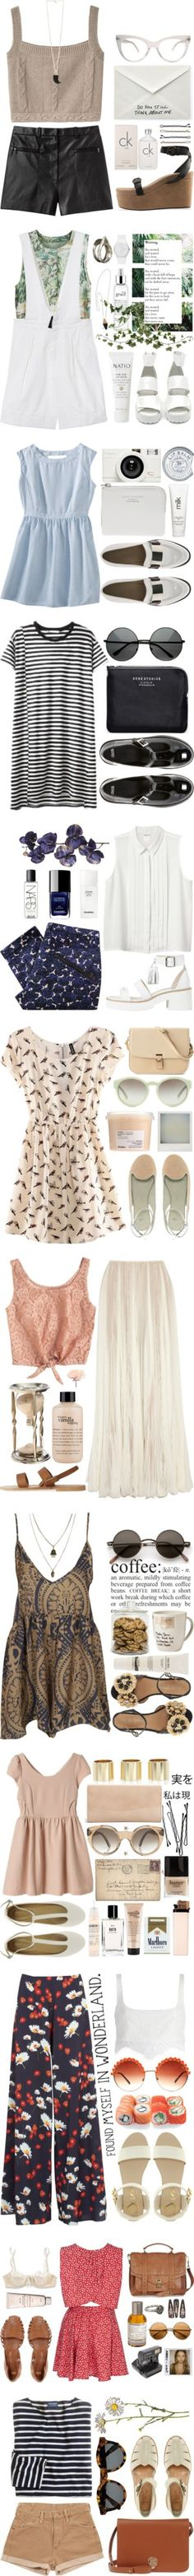 """What I'd Wear Vol. 1"" by rachelgasm ❤ liked on Polyvore"